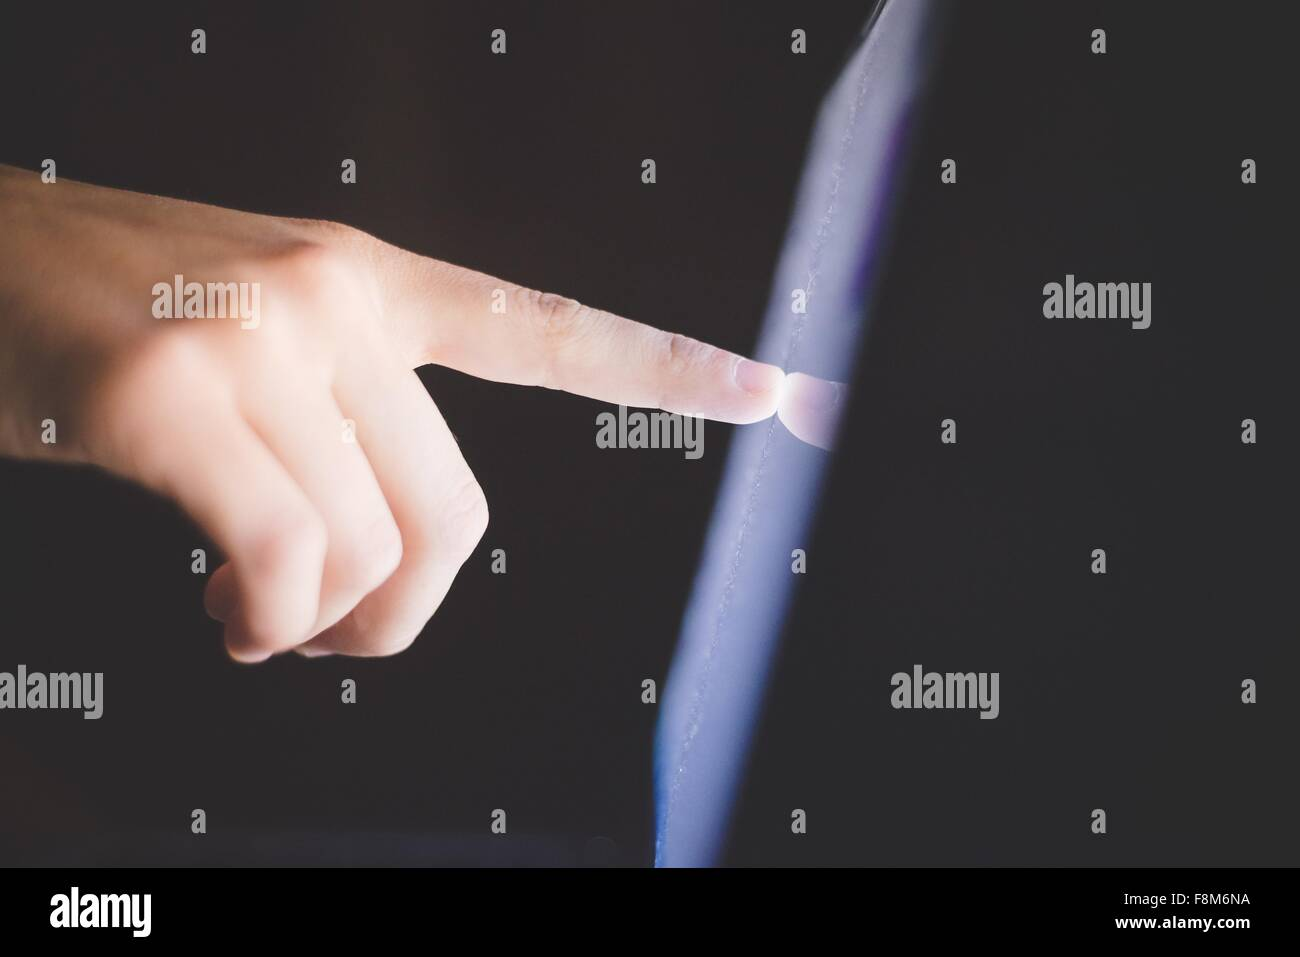 Side view of hand pointing at computer screen - Stock Image